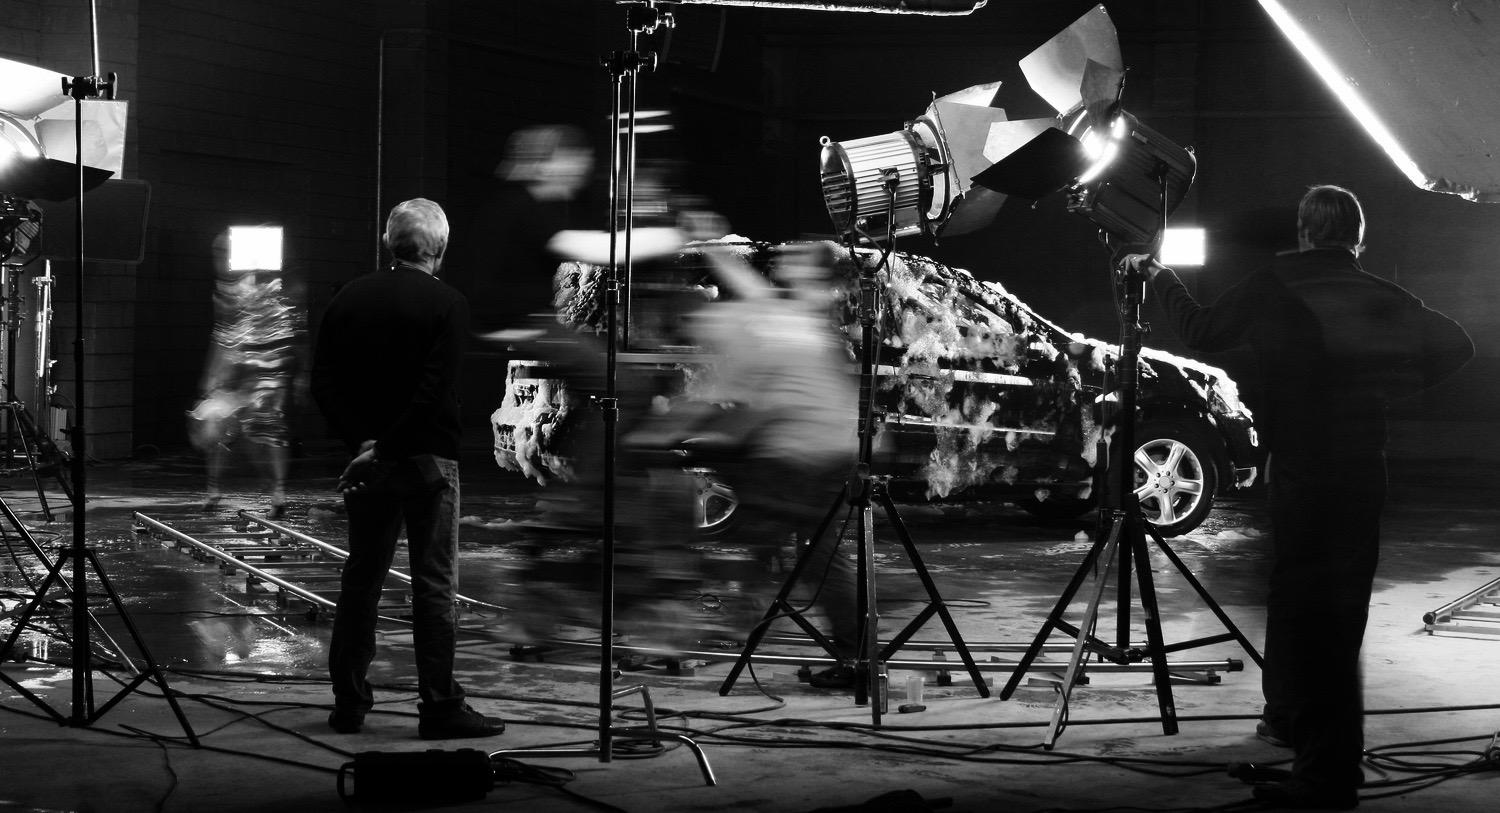 My First Job in Film: How to become a commercials production company runner